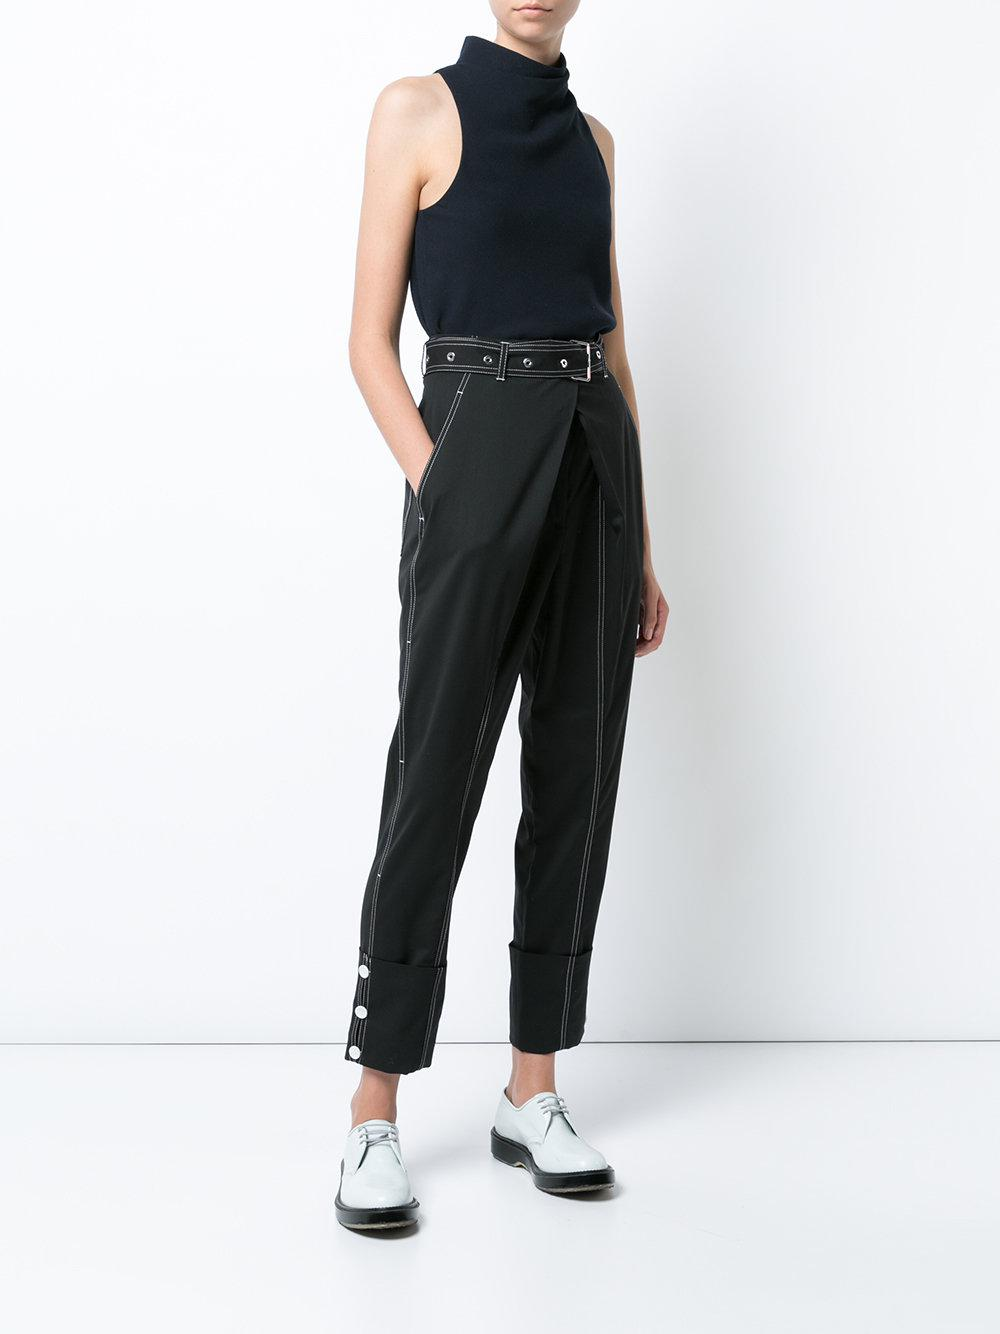 Proenza Schouler Cotton Belted Straight Pant With Cuff in Black